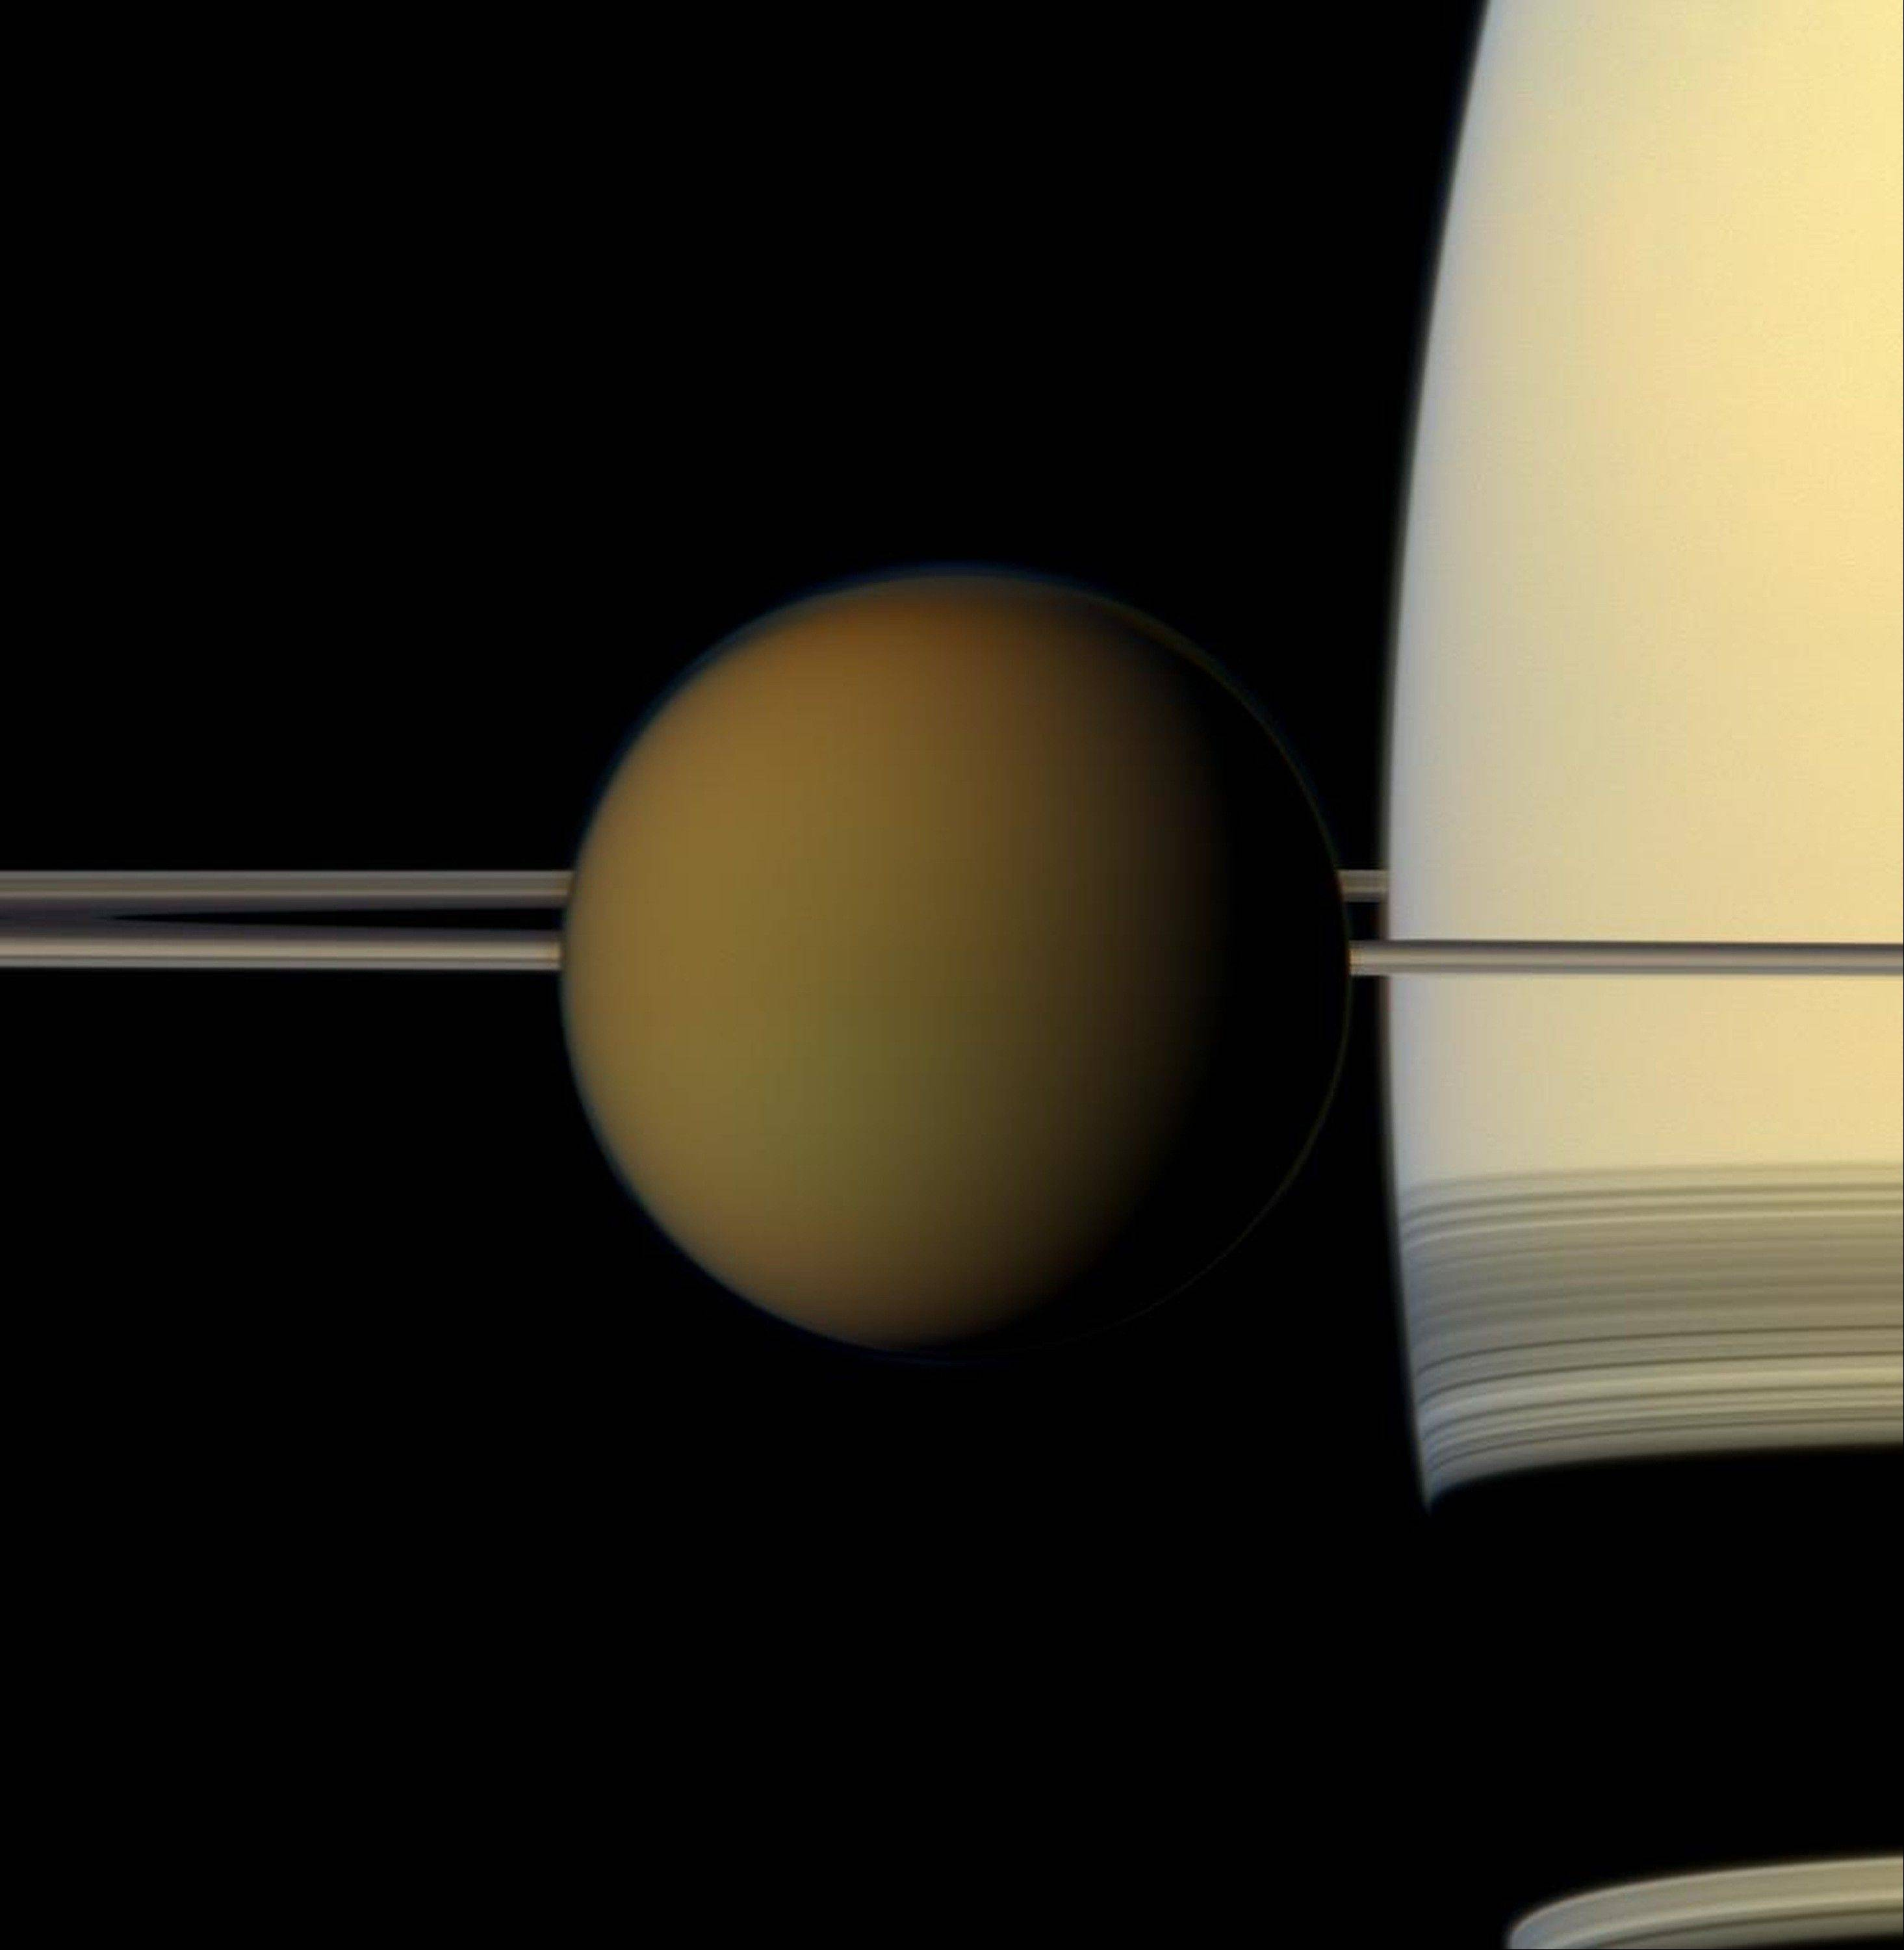 This undated true color image by the Cassini spacecraft released by NASA shows Saturn's largest moon, Titan, passing in front of the planet and its rings. A new study released Thursday suggests there may be an ocean below Titan's frigid surface.